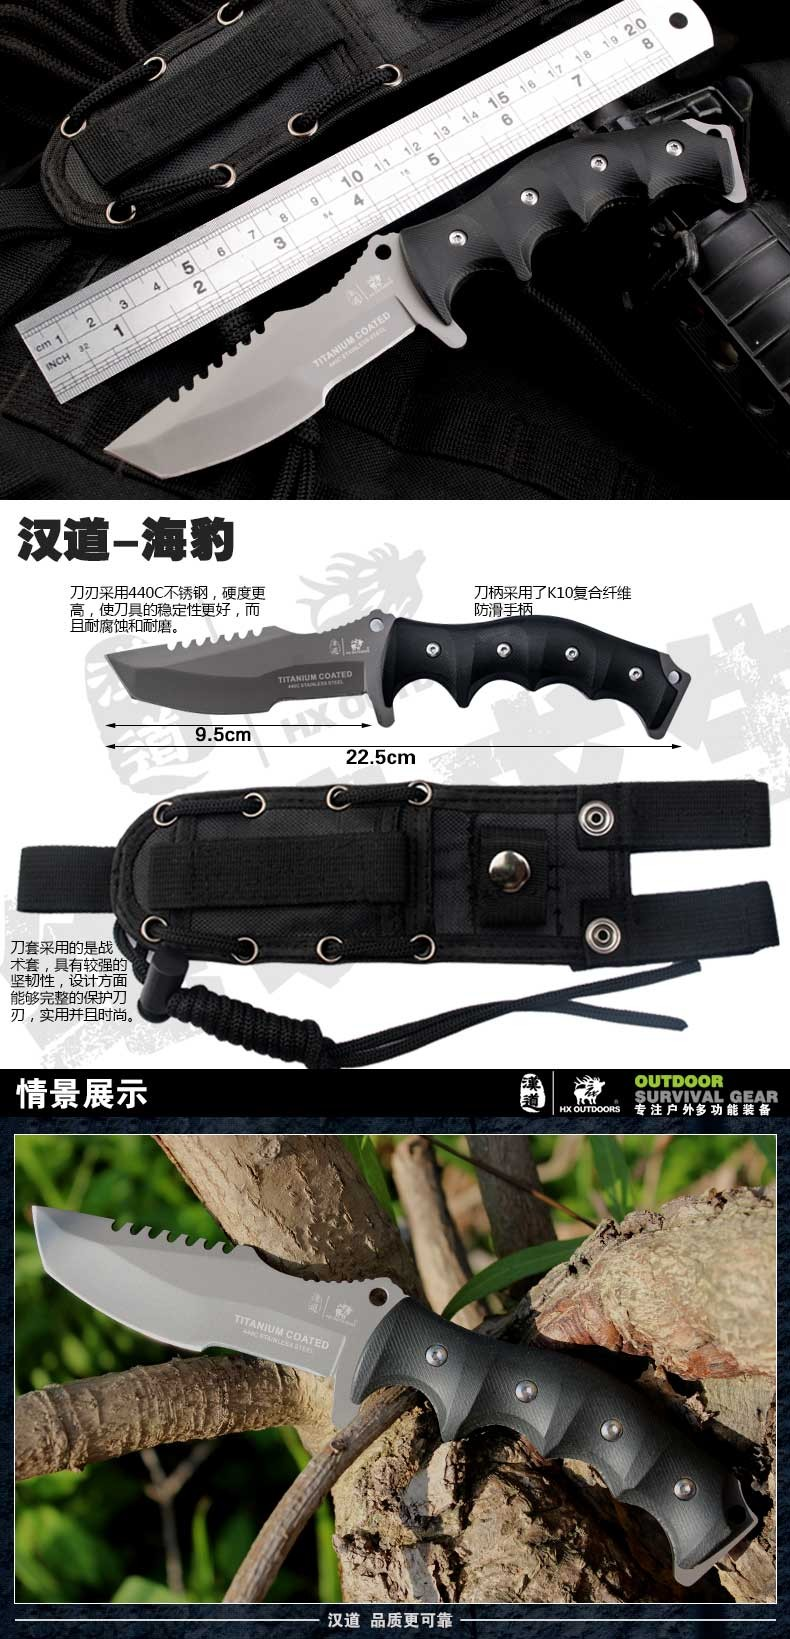 Buy Stainless Steel Karambit Knife Pocket Knife Camping Saber Fixed Blade Tactical Military Hunting Survival Knife Tools  22.5cm cheap